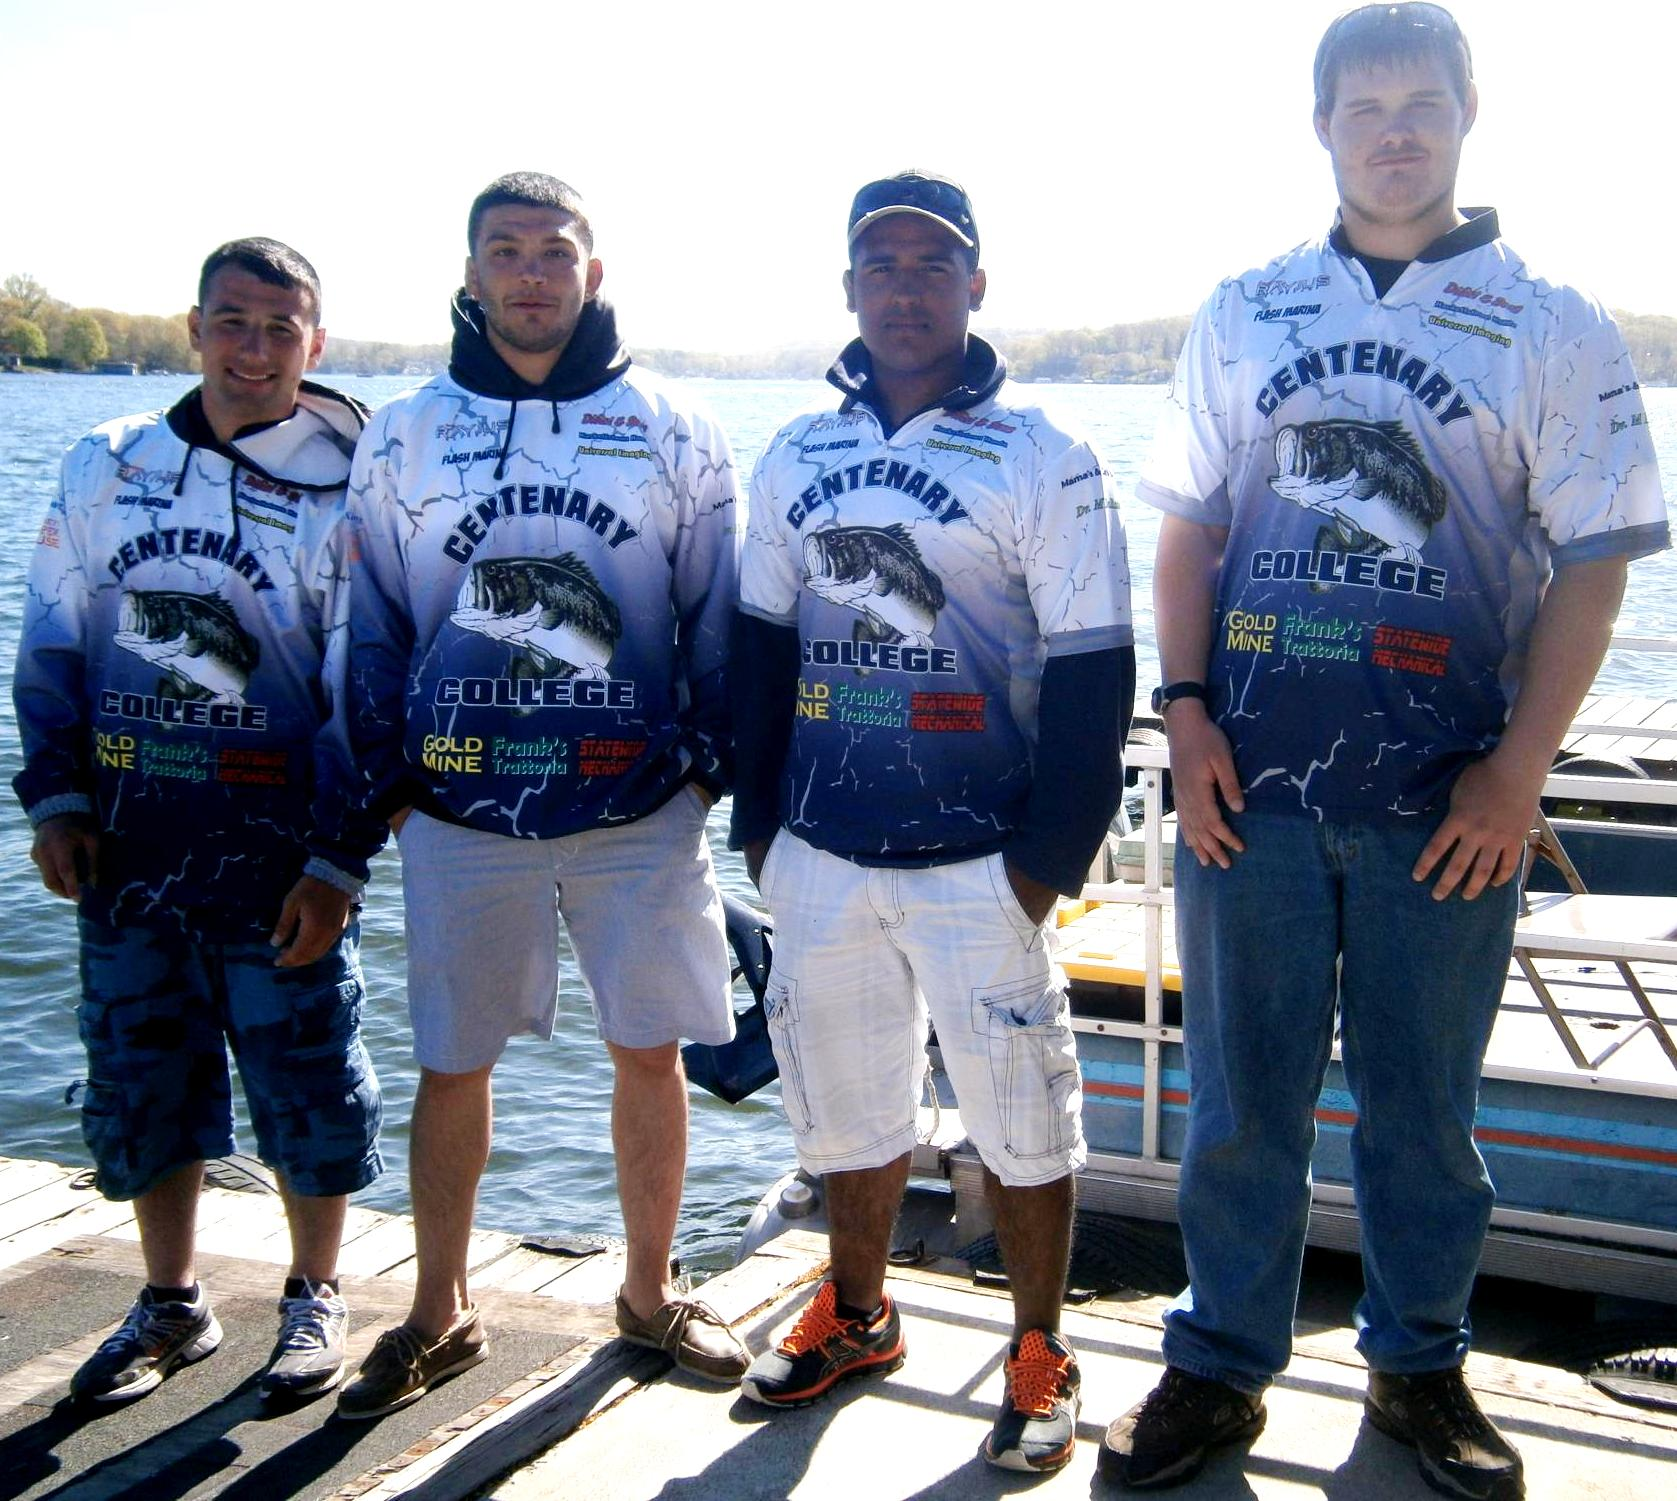 Centenary College New Jersey Bass Fishing Team